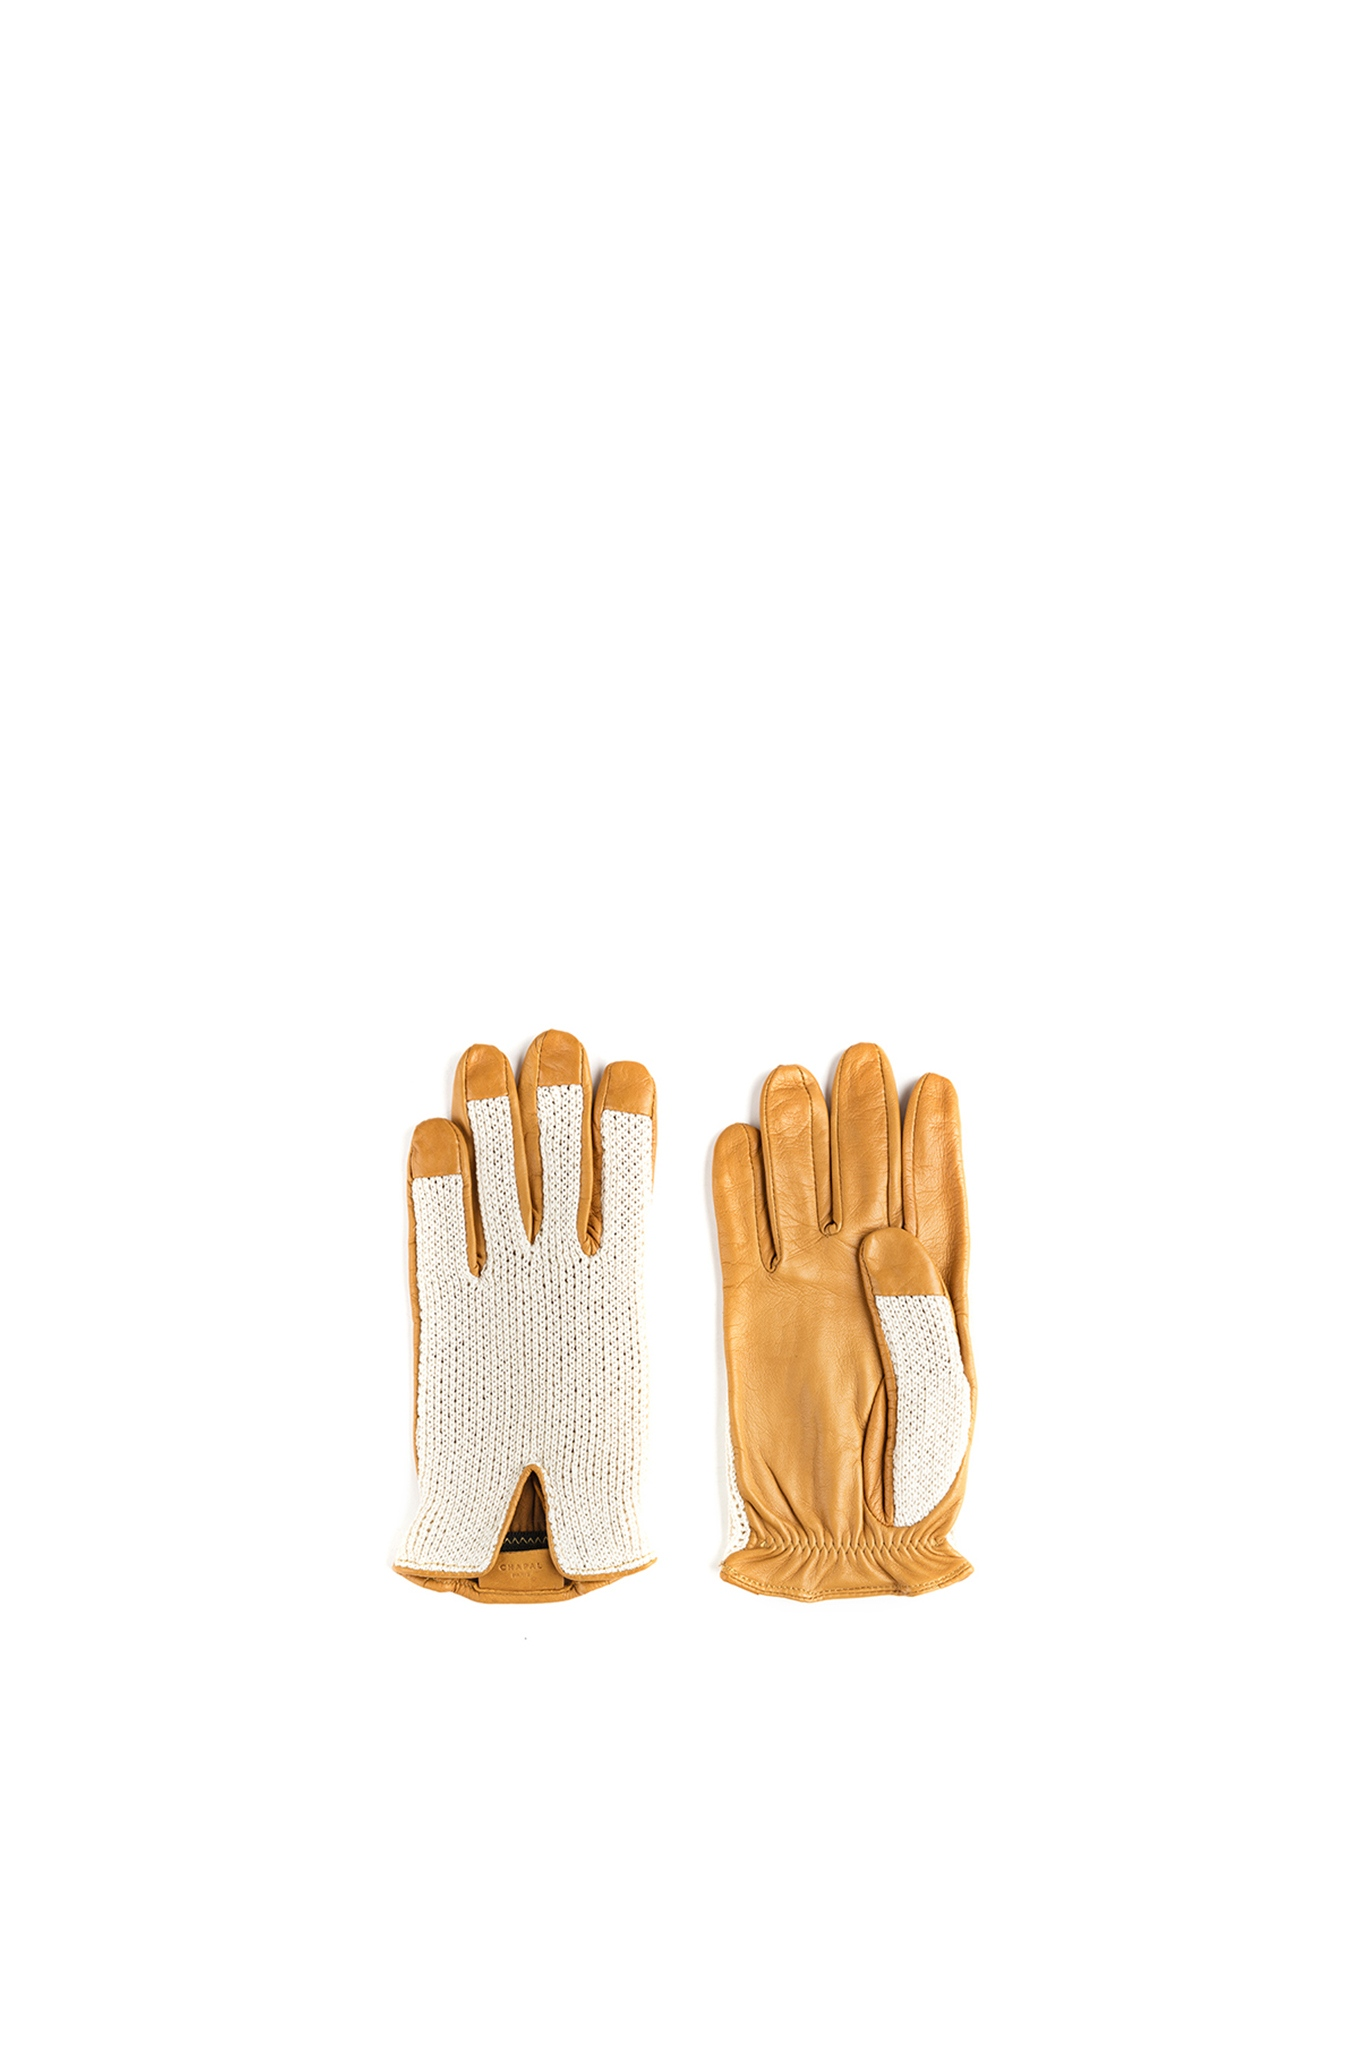 1950 Knitted Gloves - Mesh and glossy leather - Tan color